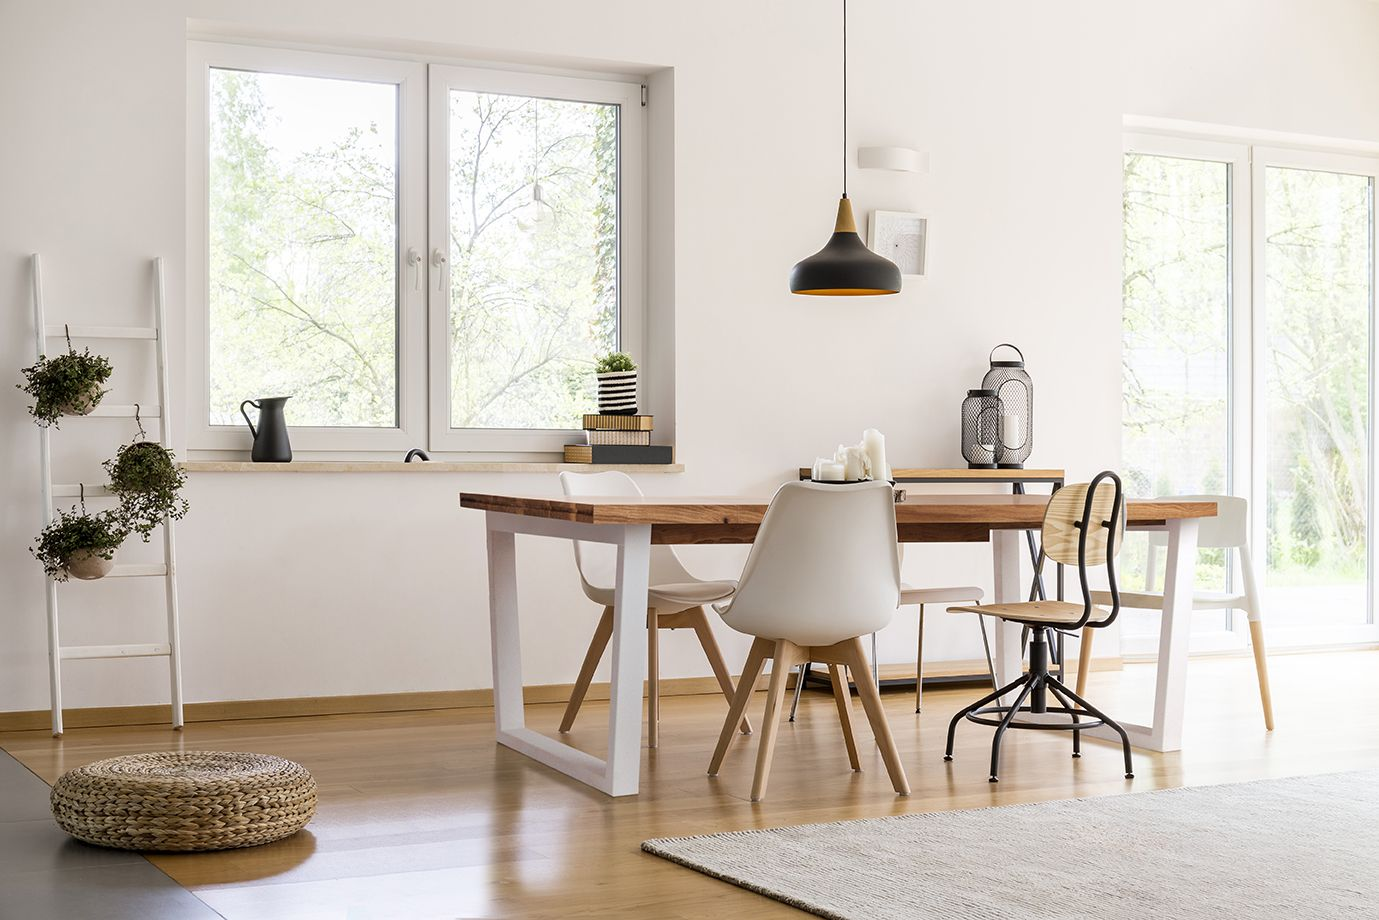 Modern foldout table with oak wood top and white legs